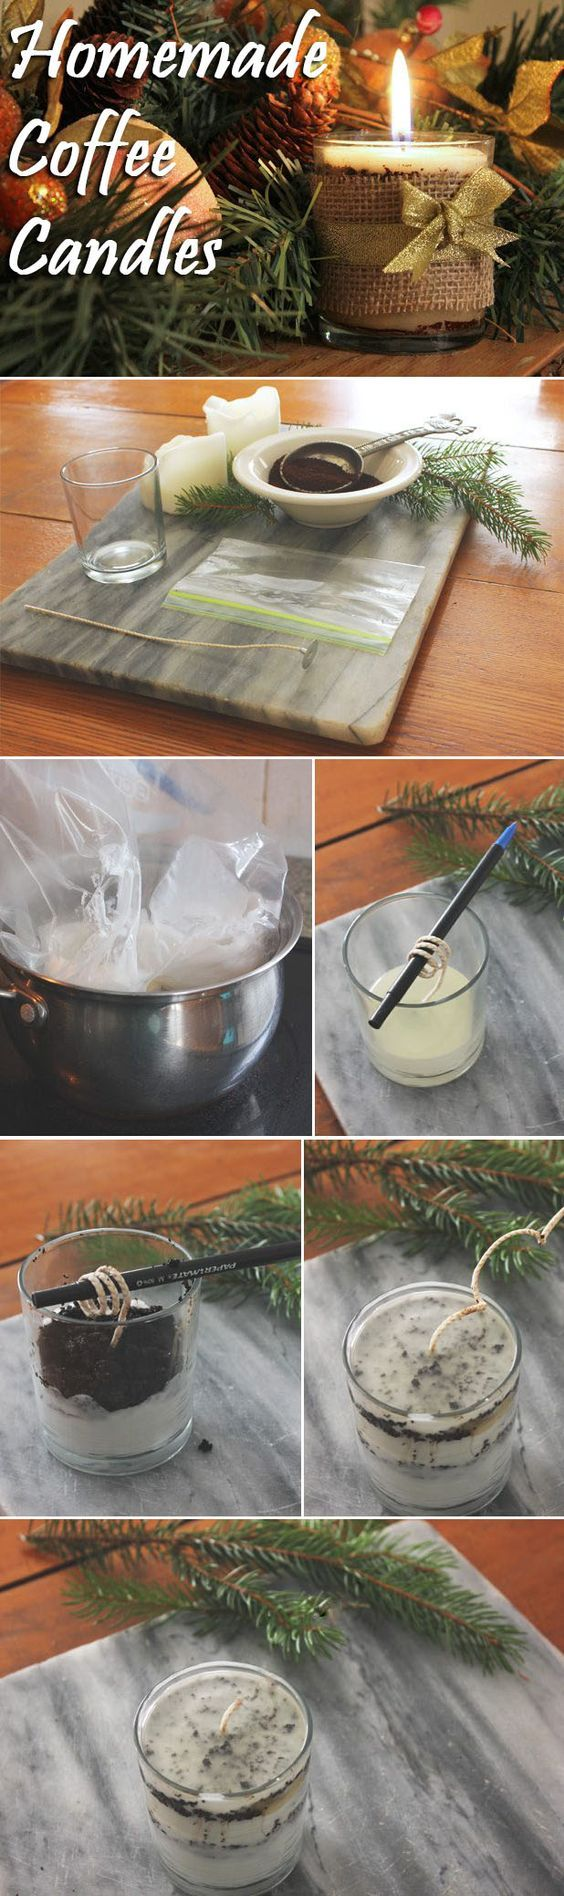 Make your own coffee scented candles from old candles and coffee grounds! You can save so much money making this rather than spending a lot at the mall. A great upcycling trick and amazing hostess gift for the holidays! http://www.ehow.com/how_2209913_make-coffee-bean-candles.html?utm_source=pinterest.com&utm_medium=referral&utm_content=inline&utm_campaign=fanpage: